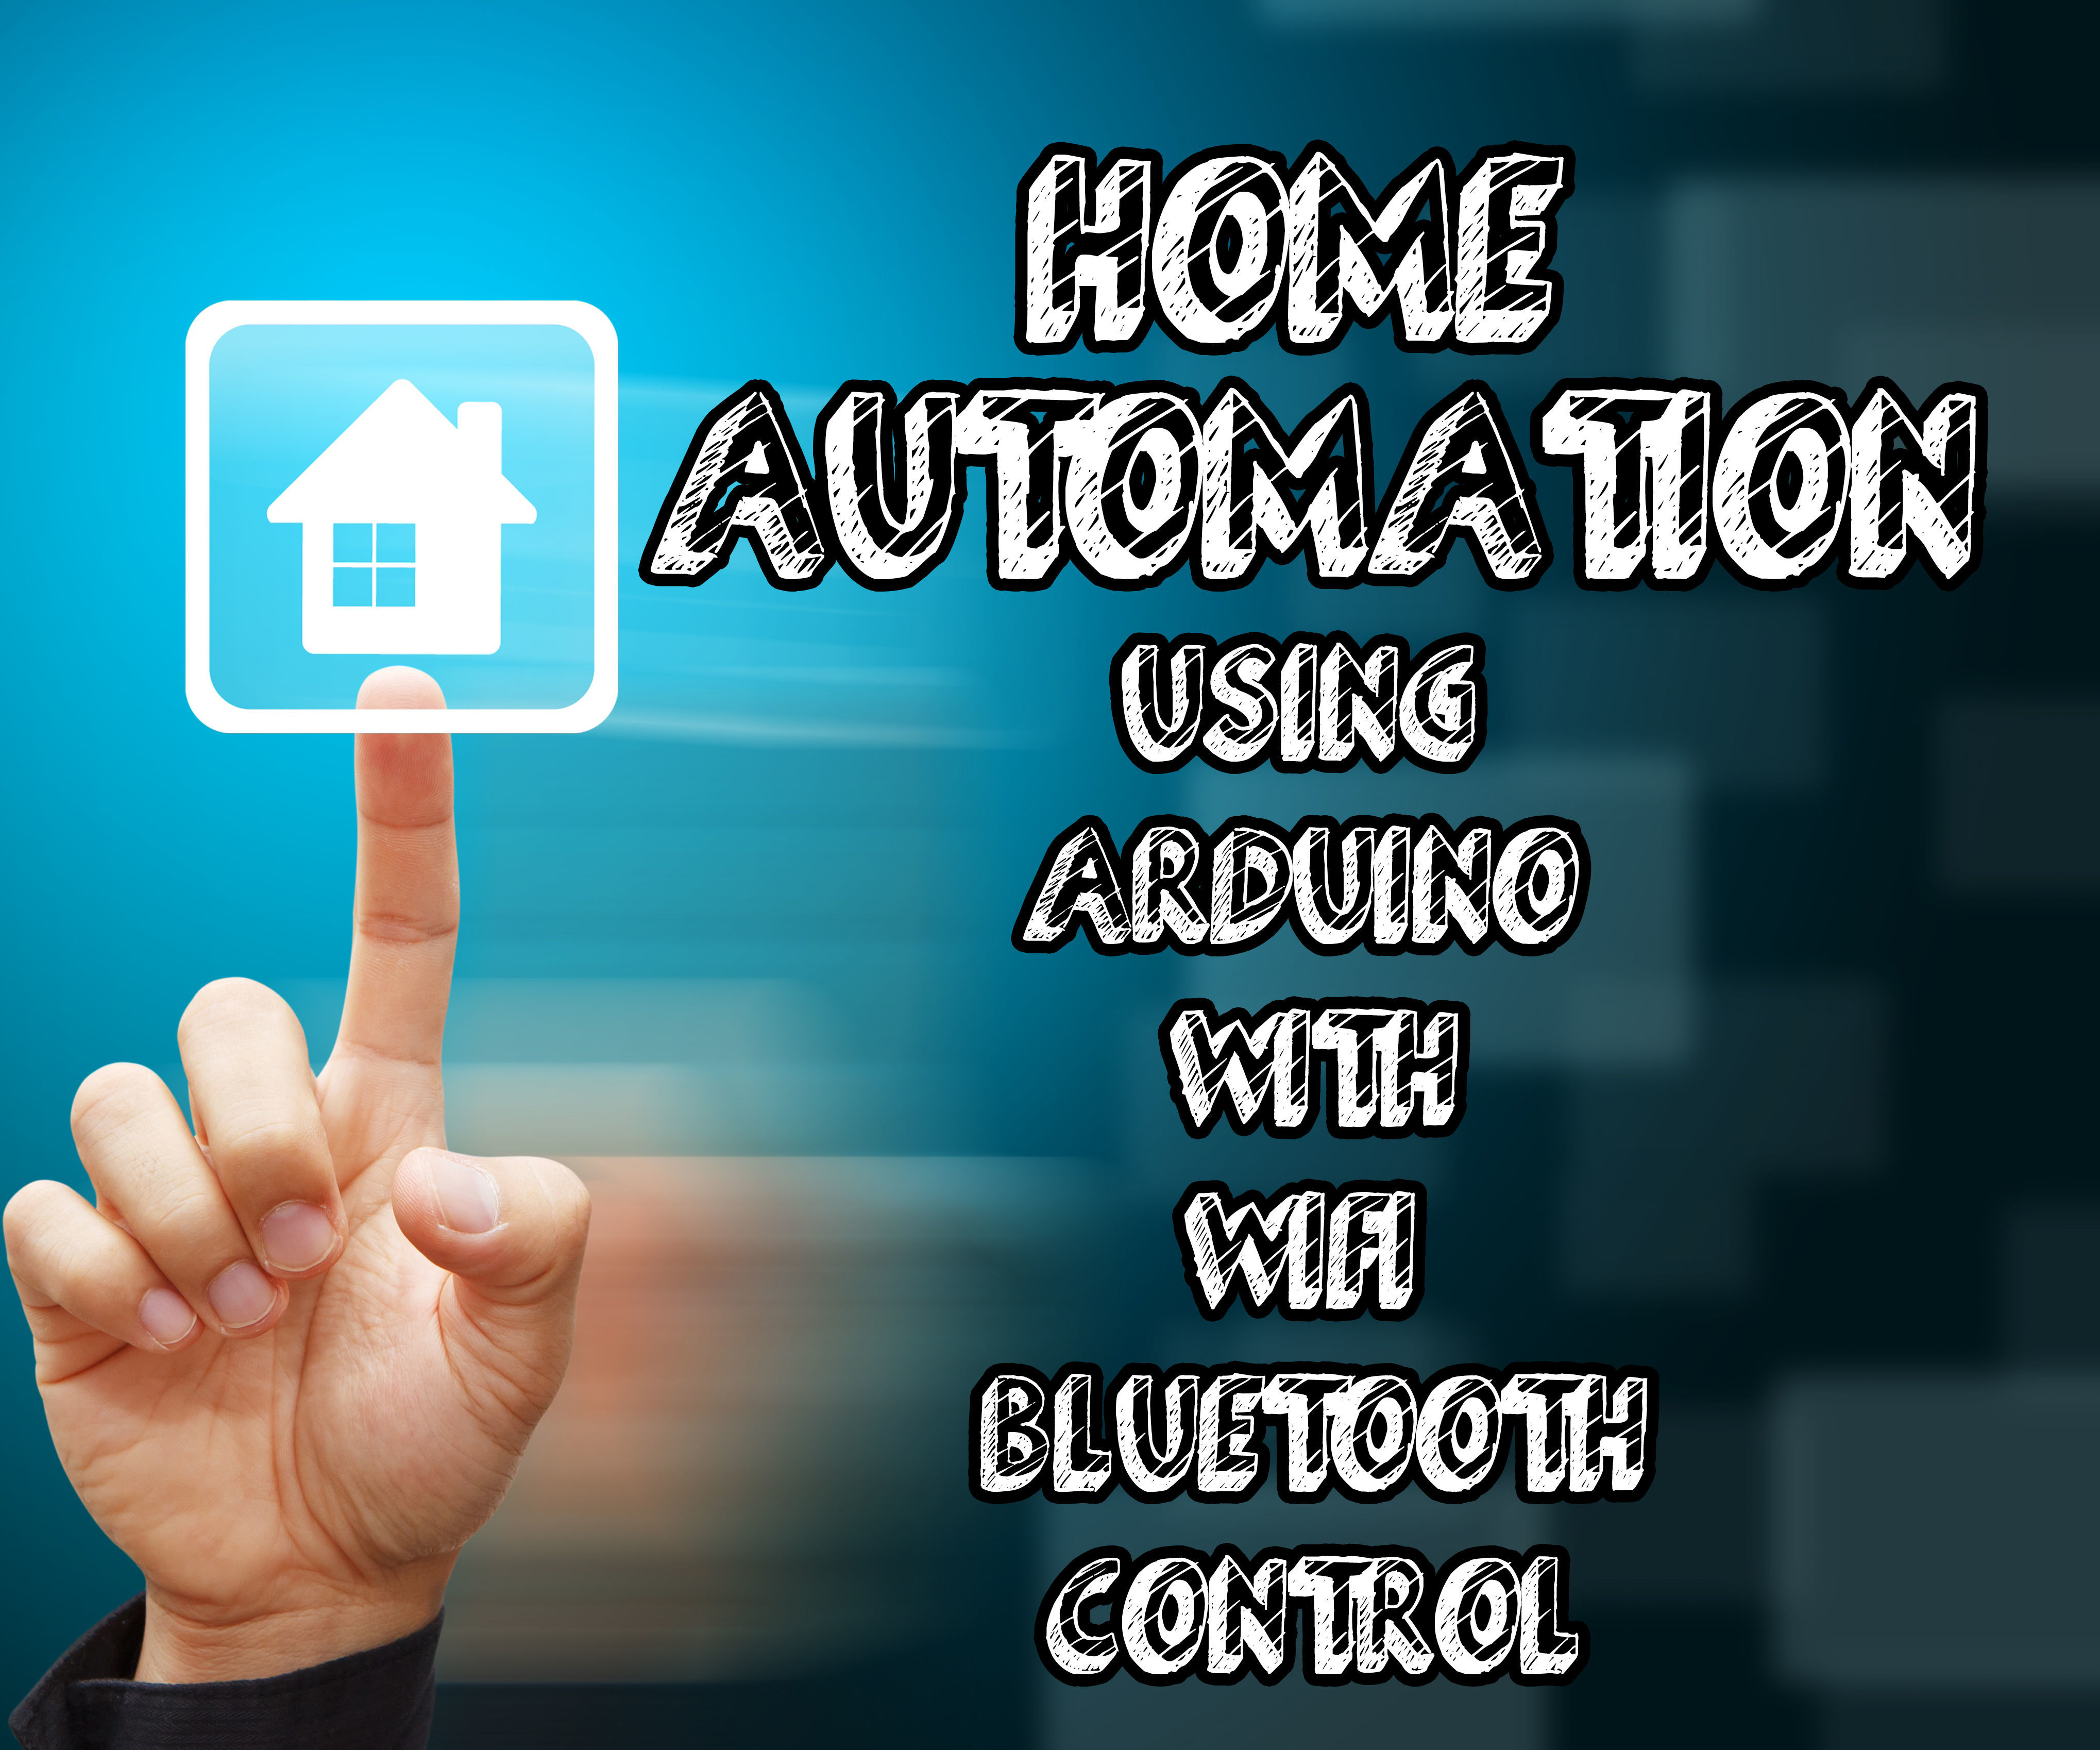 Home automation using arduino with wifi, bluetooth and IR remote control